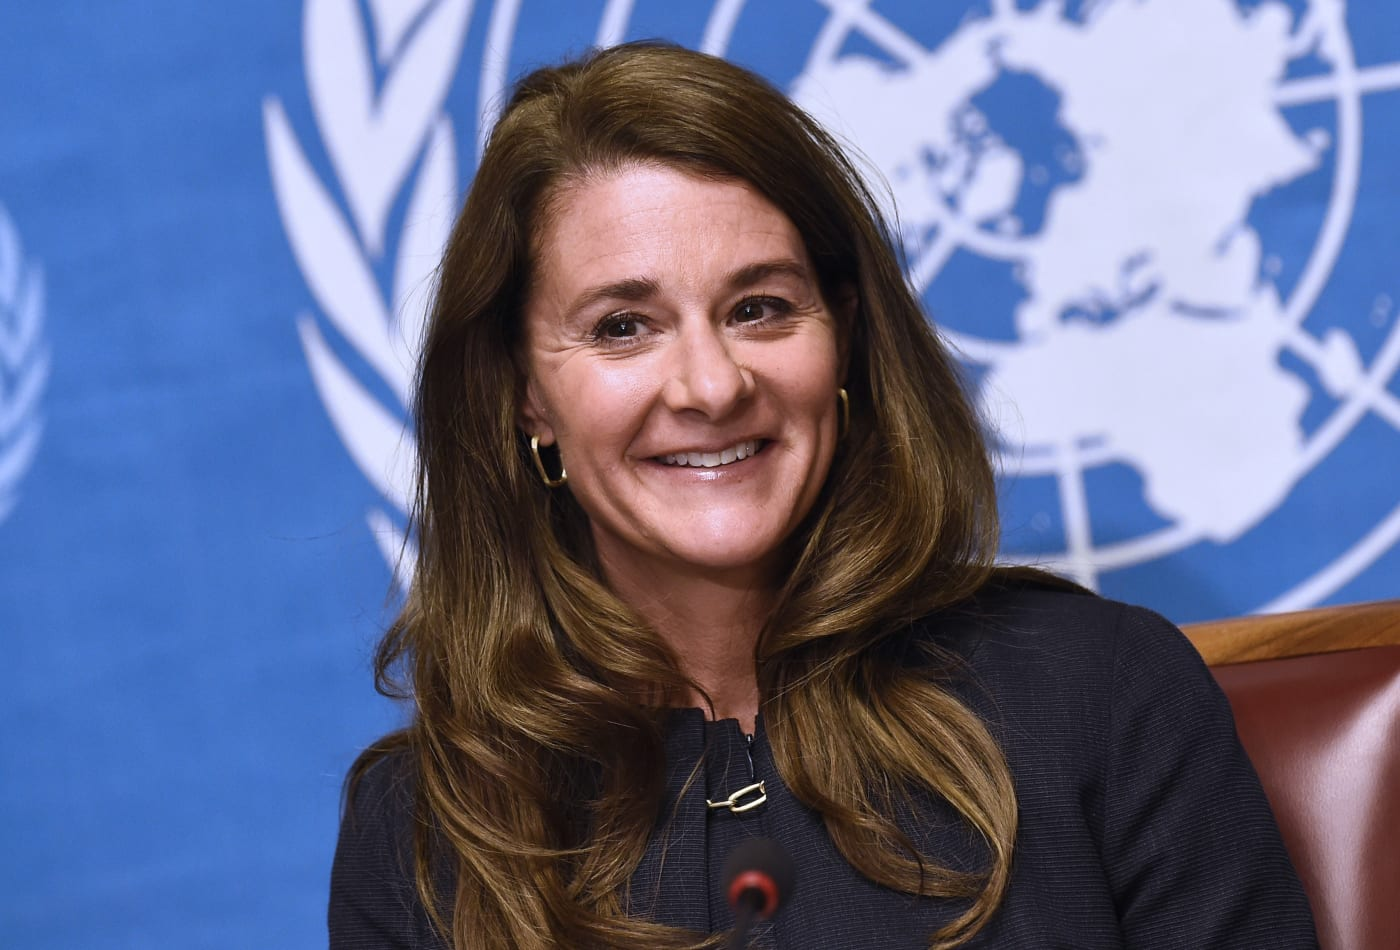 Melinda Gates has Launched a $50m Initiative to Boost Women in Tech